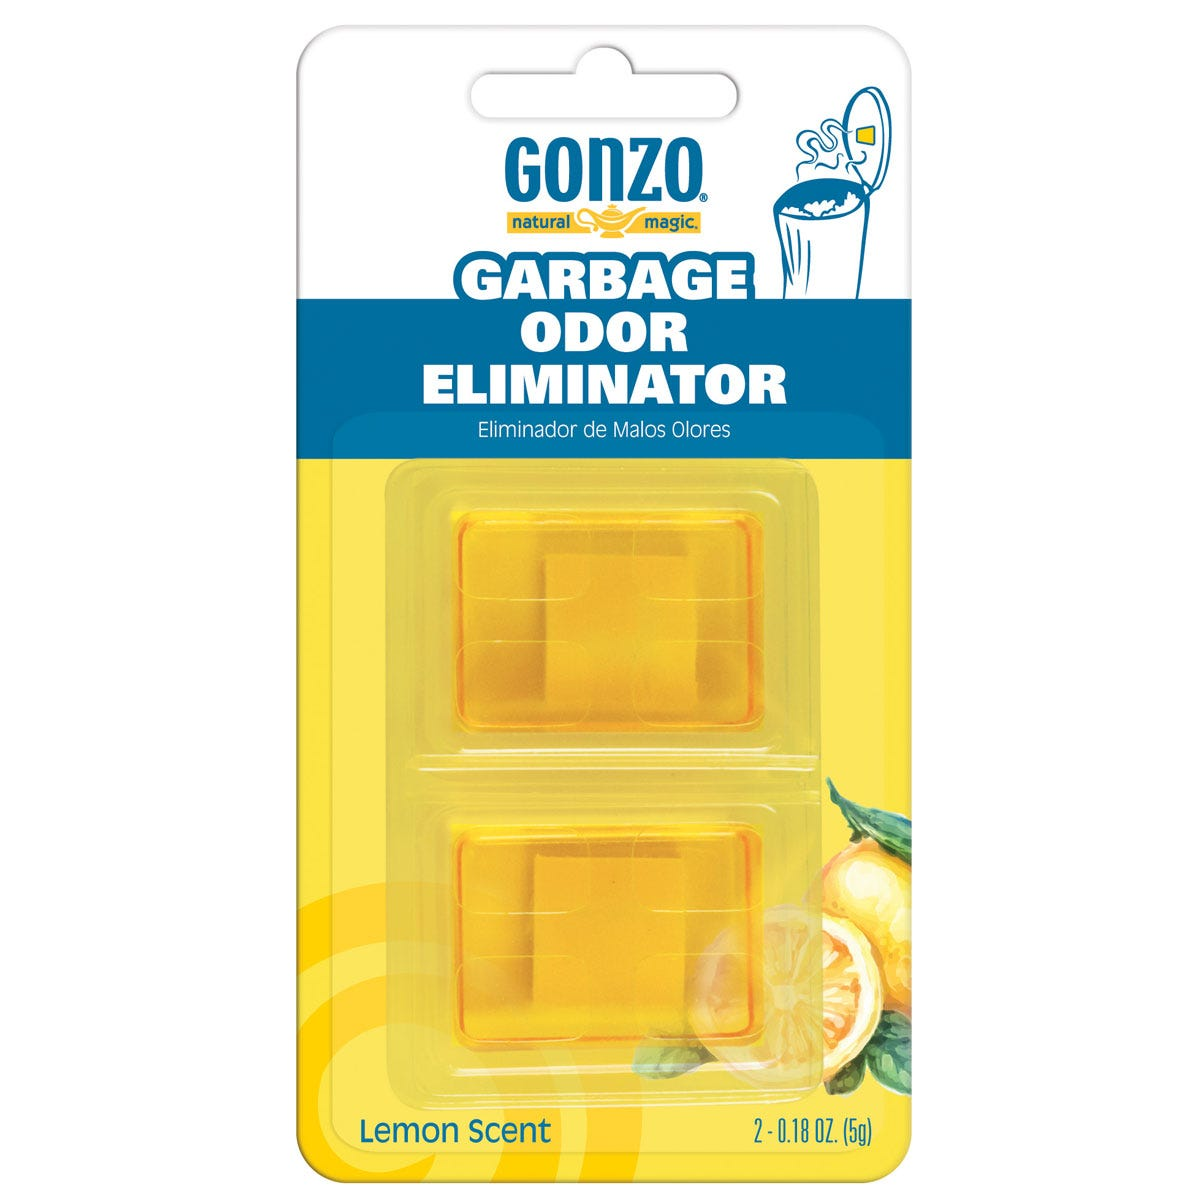 https://googone.com/media/catalog/product/g/a/garbage-odor-eliminator_front.jpg